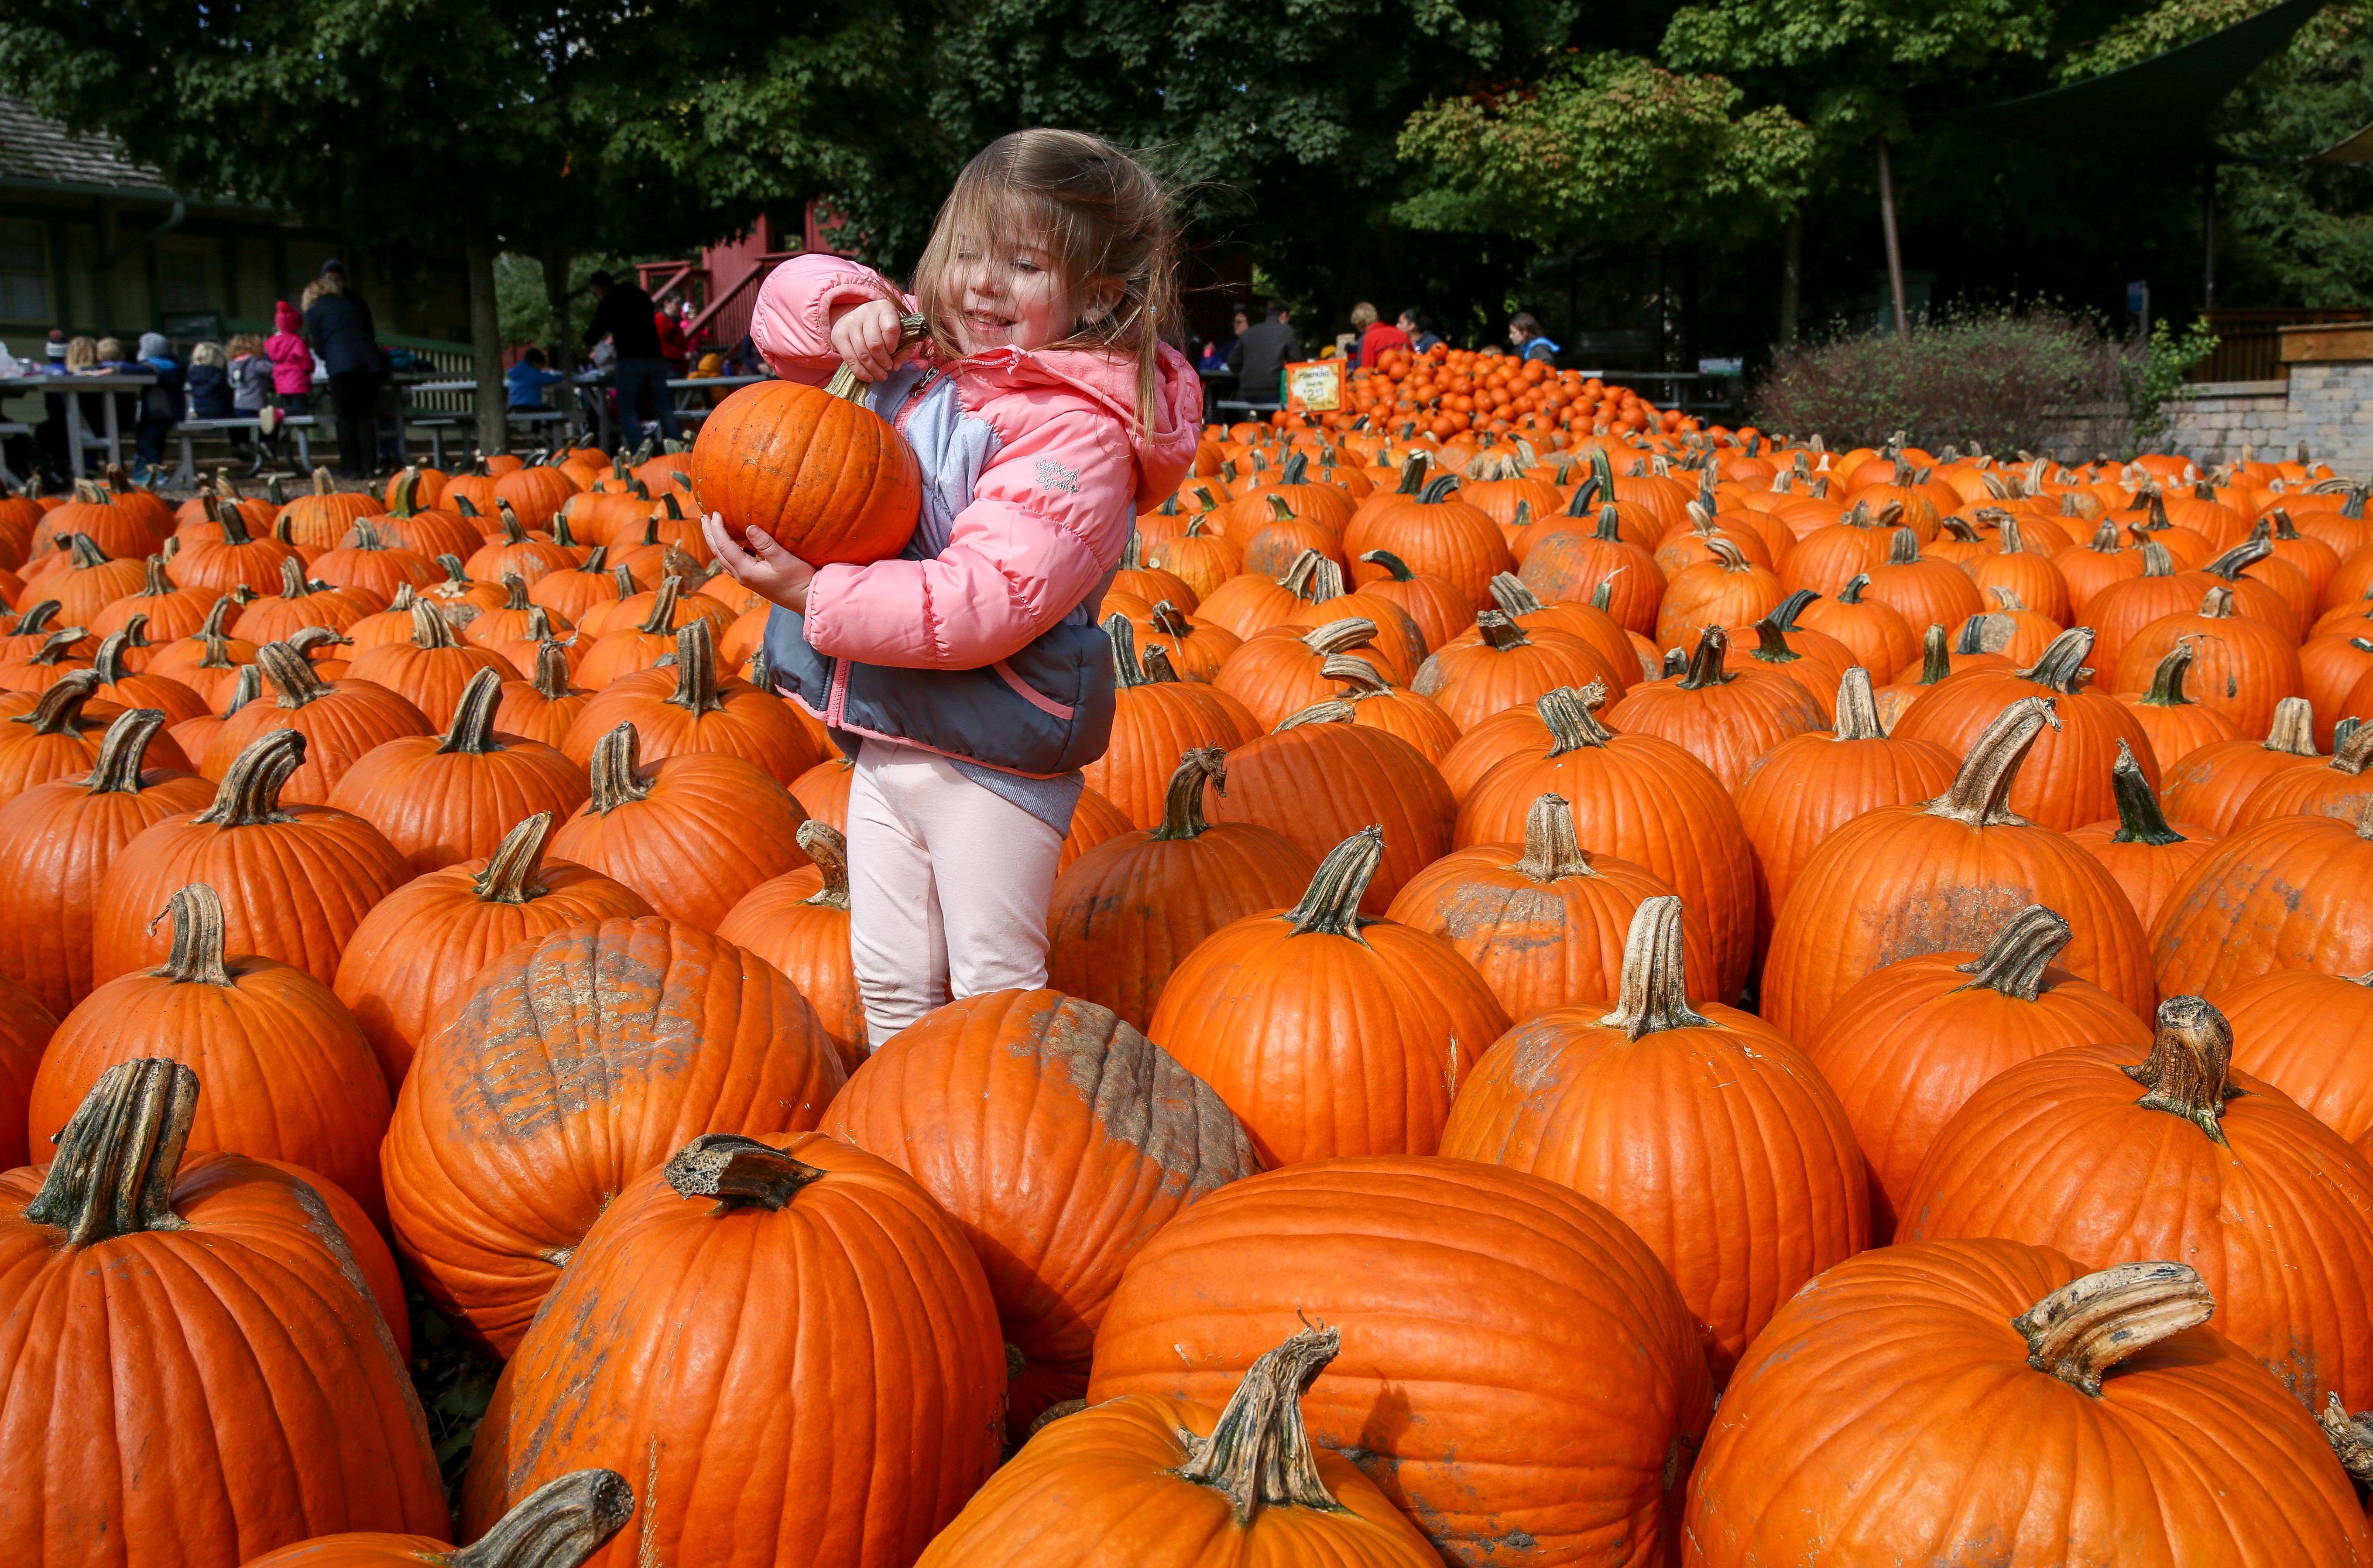 Emma Gunn, 3, of Wheaton, finds the perfect pumpkin at the Pumpkin Fest at Cosley Zoo in Wheaton earlier this fall.